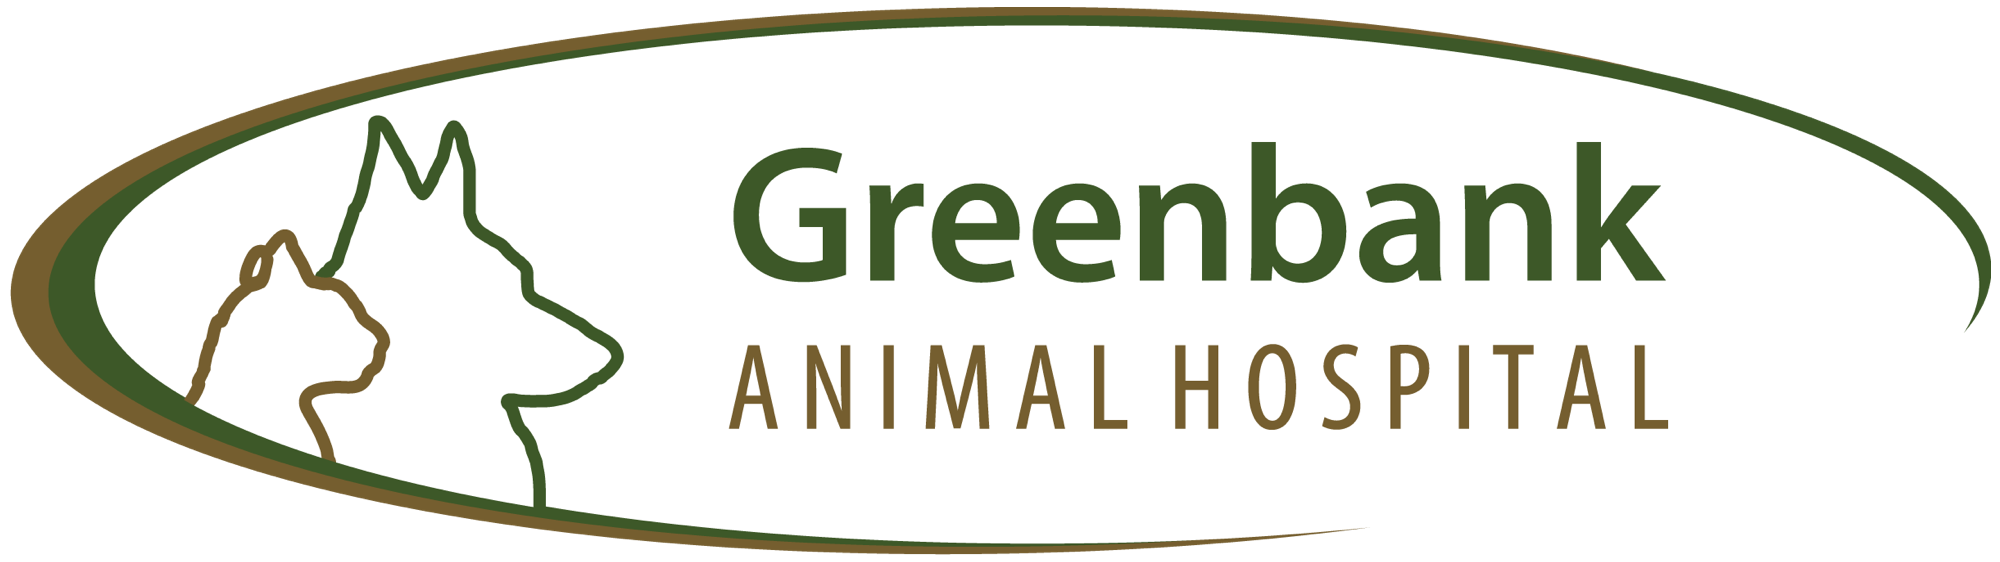 Greenbank Animal Hospital Logo